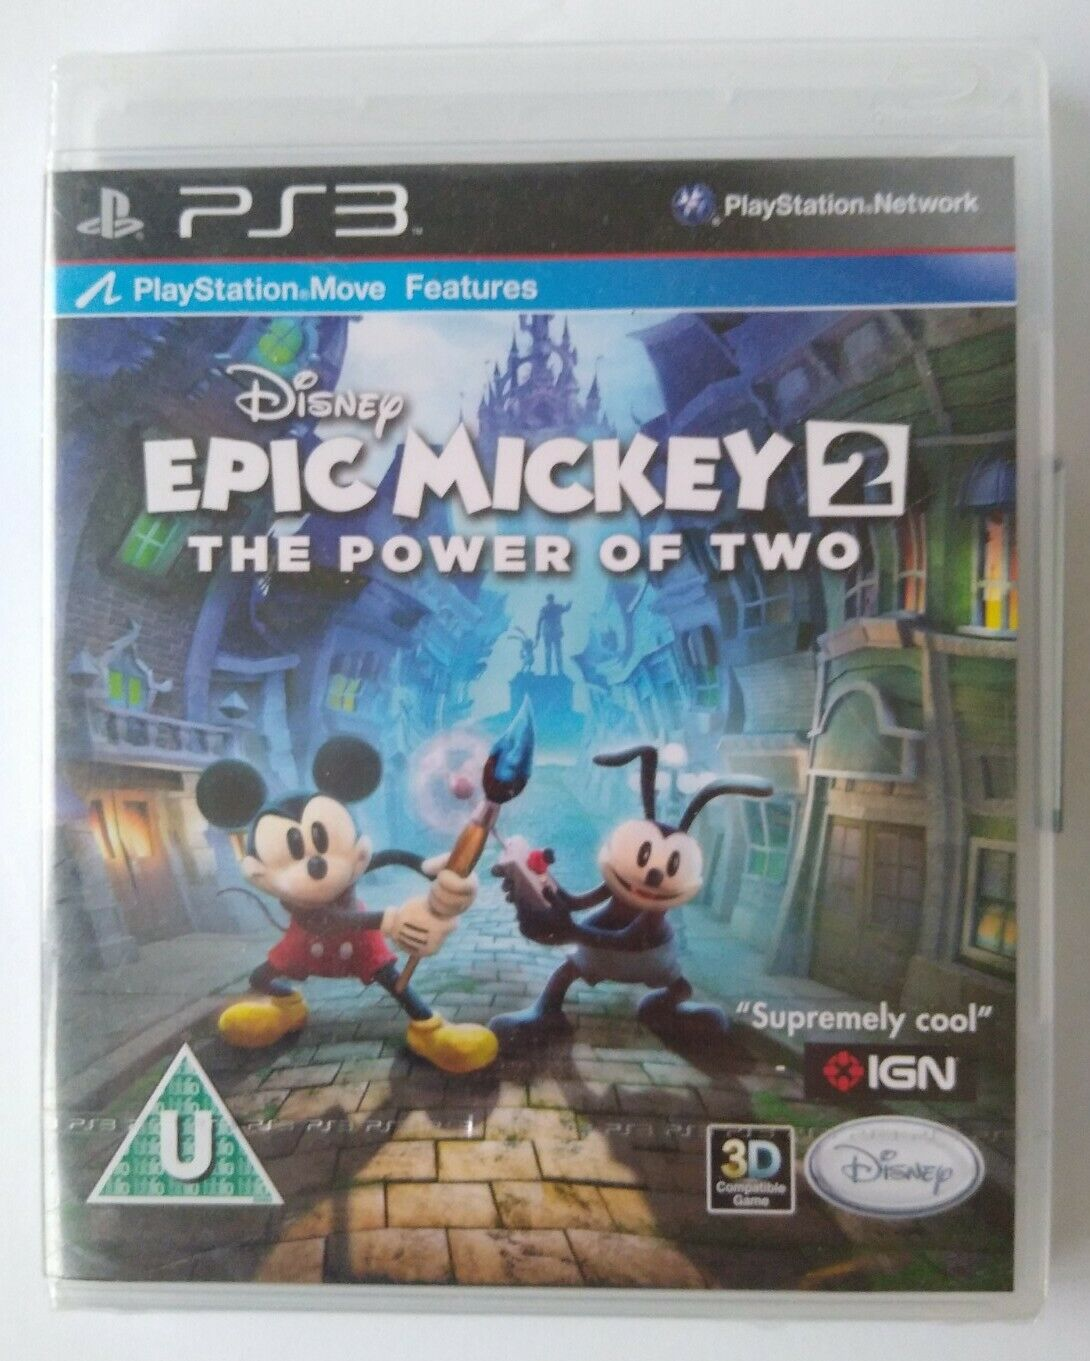 Disney Epic Mickey 2: The Power Of Two - PS3 - PLEASE READ DESCRIPTION